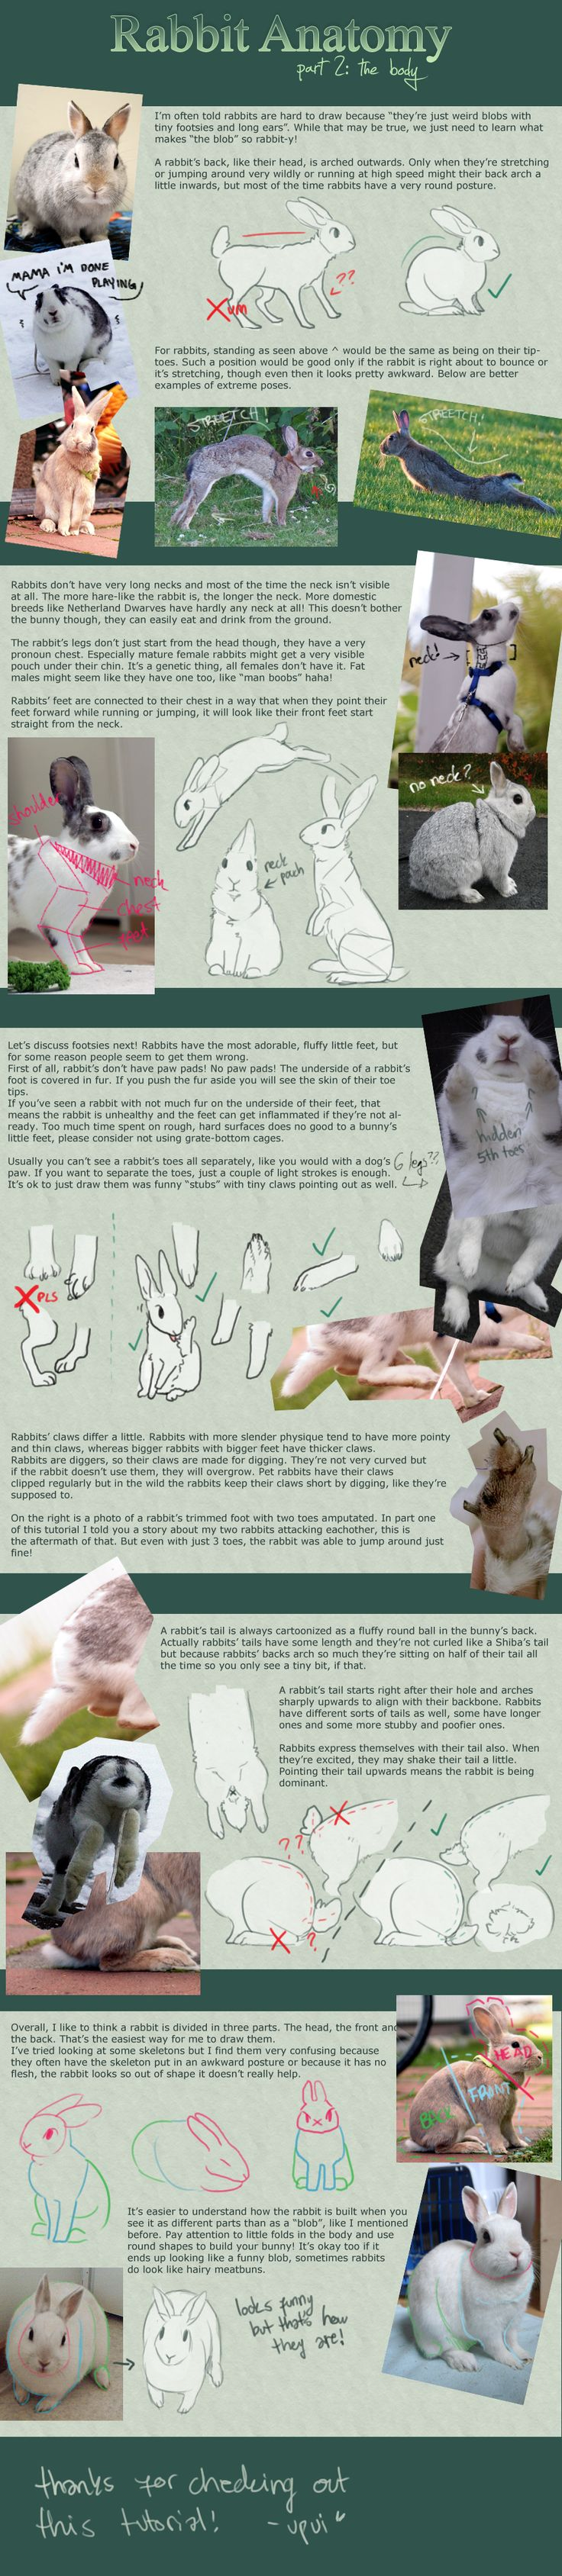 Rabbit Anatomy / Part 2: the body by upui